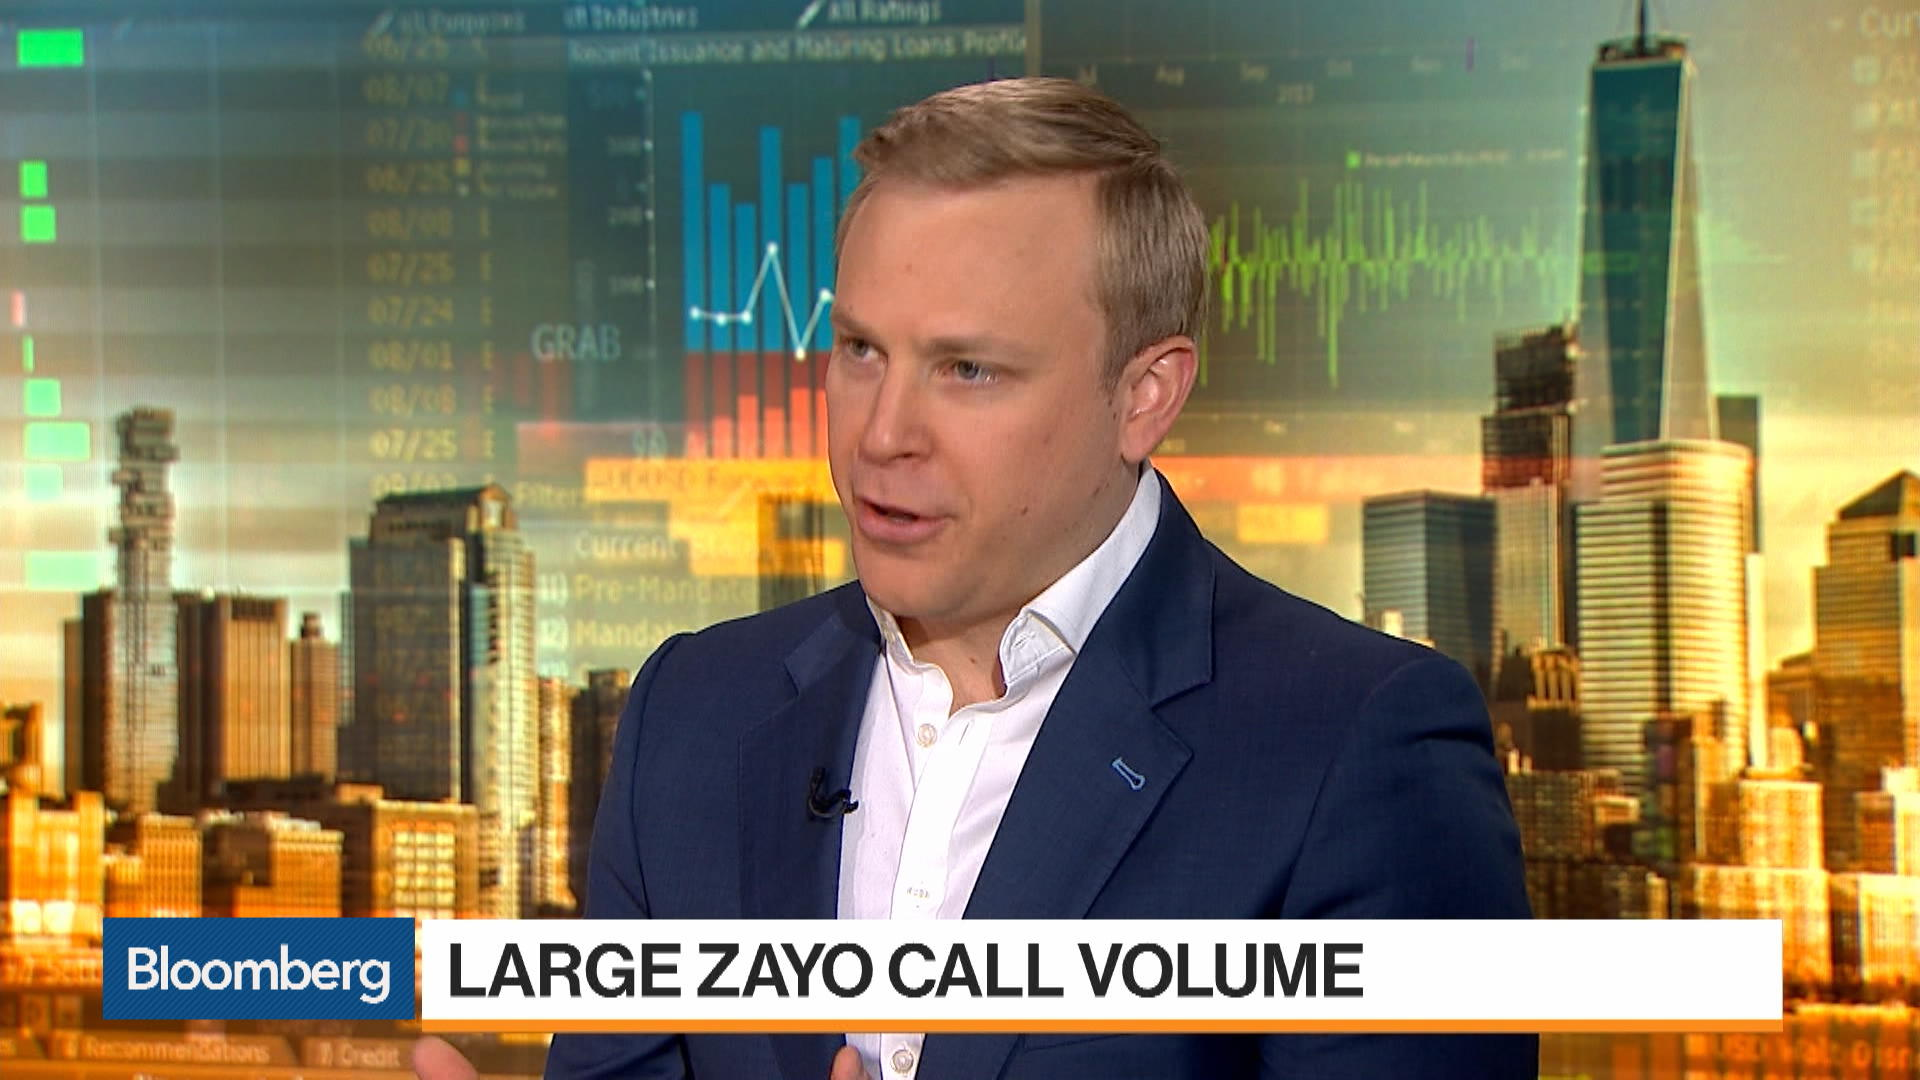 How Bechmark's Kevin Kelly Is Trading Zayo - Bloomberg